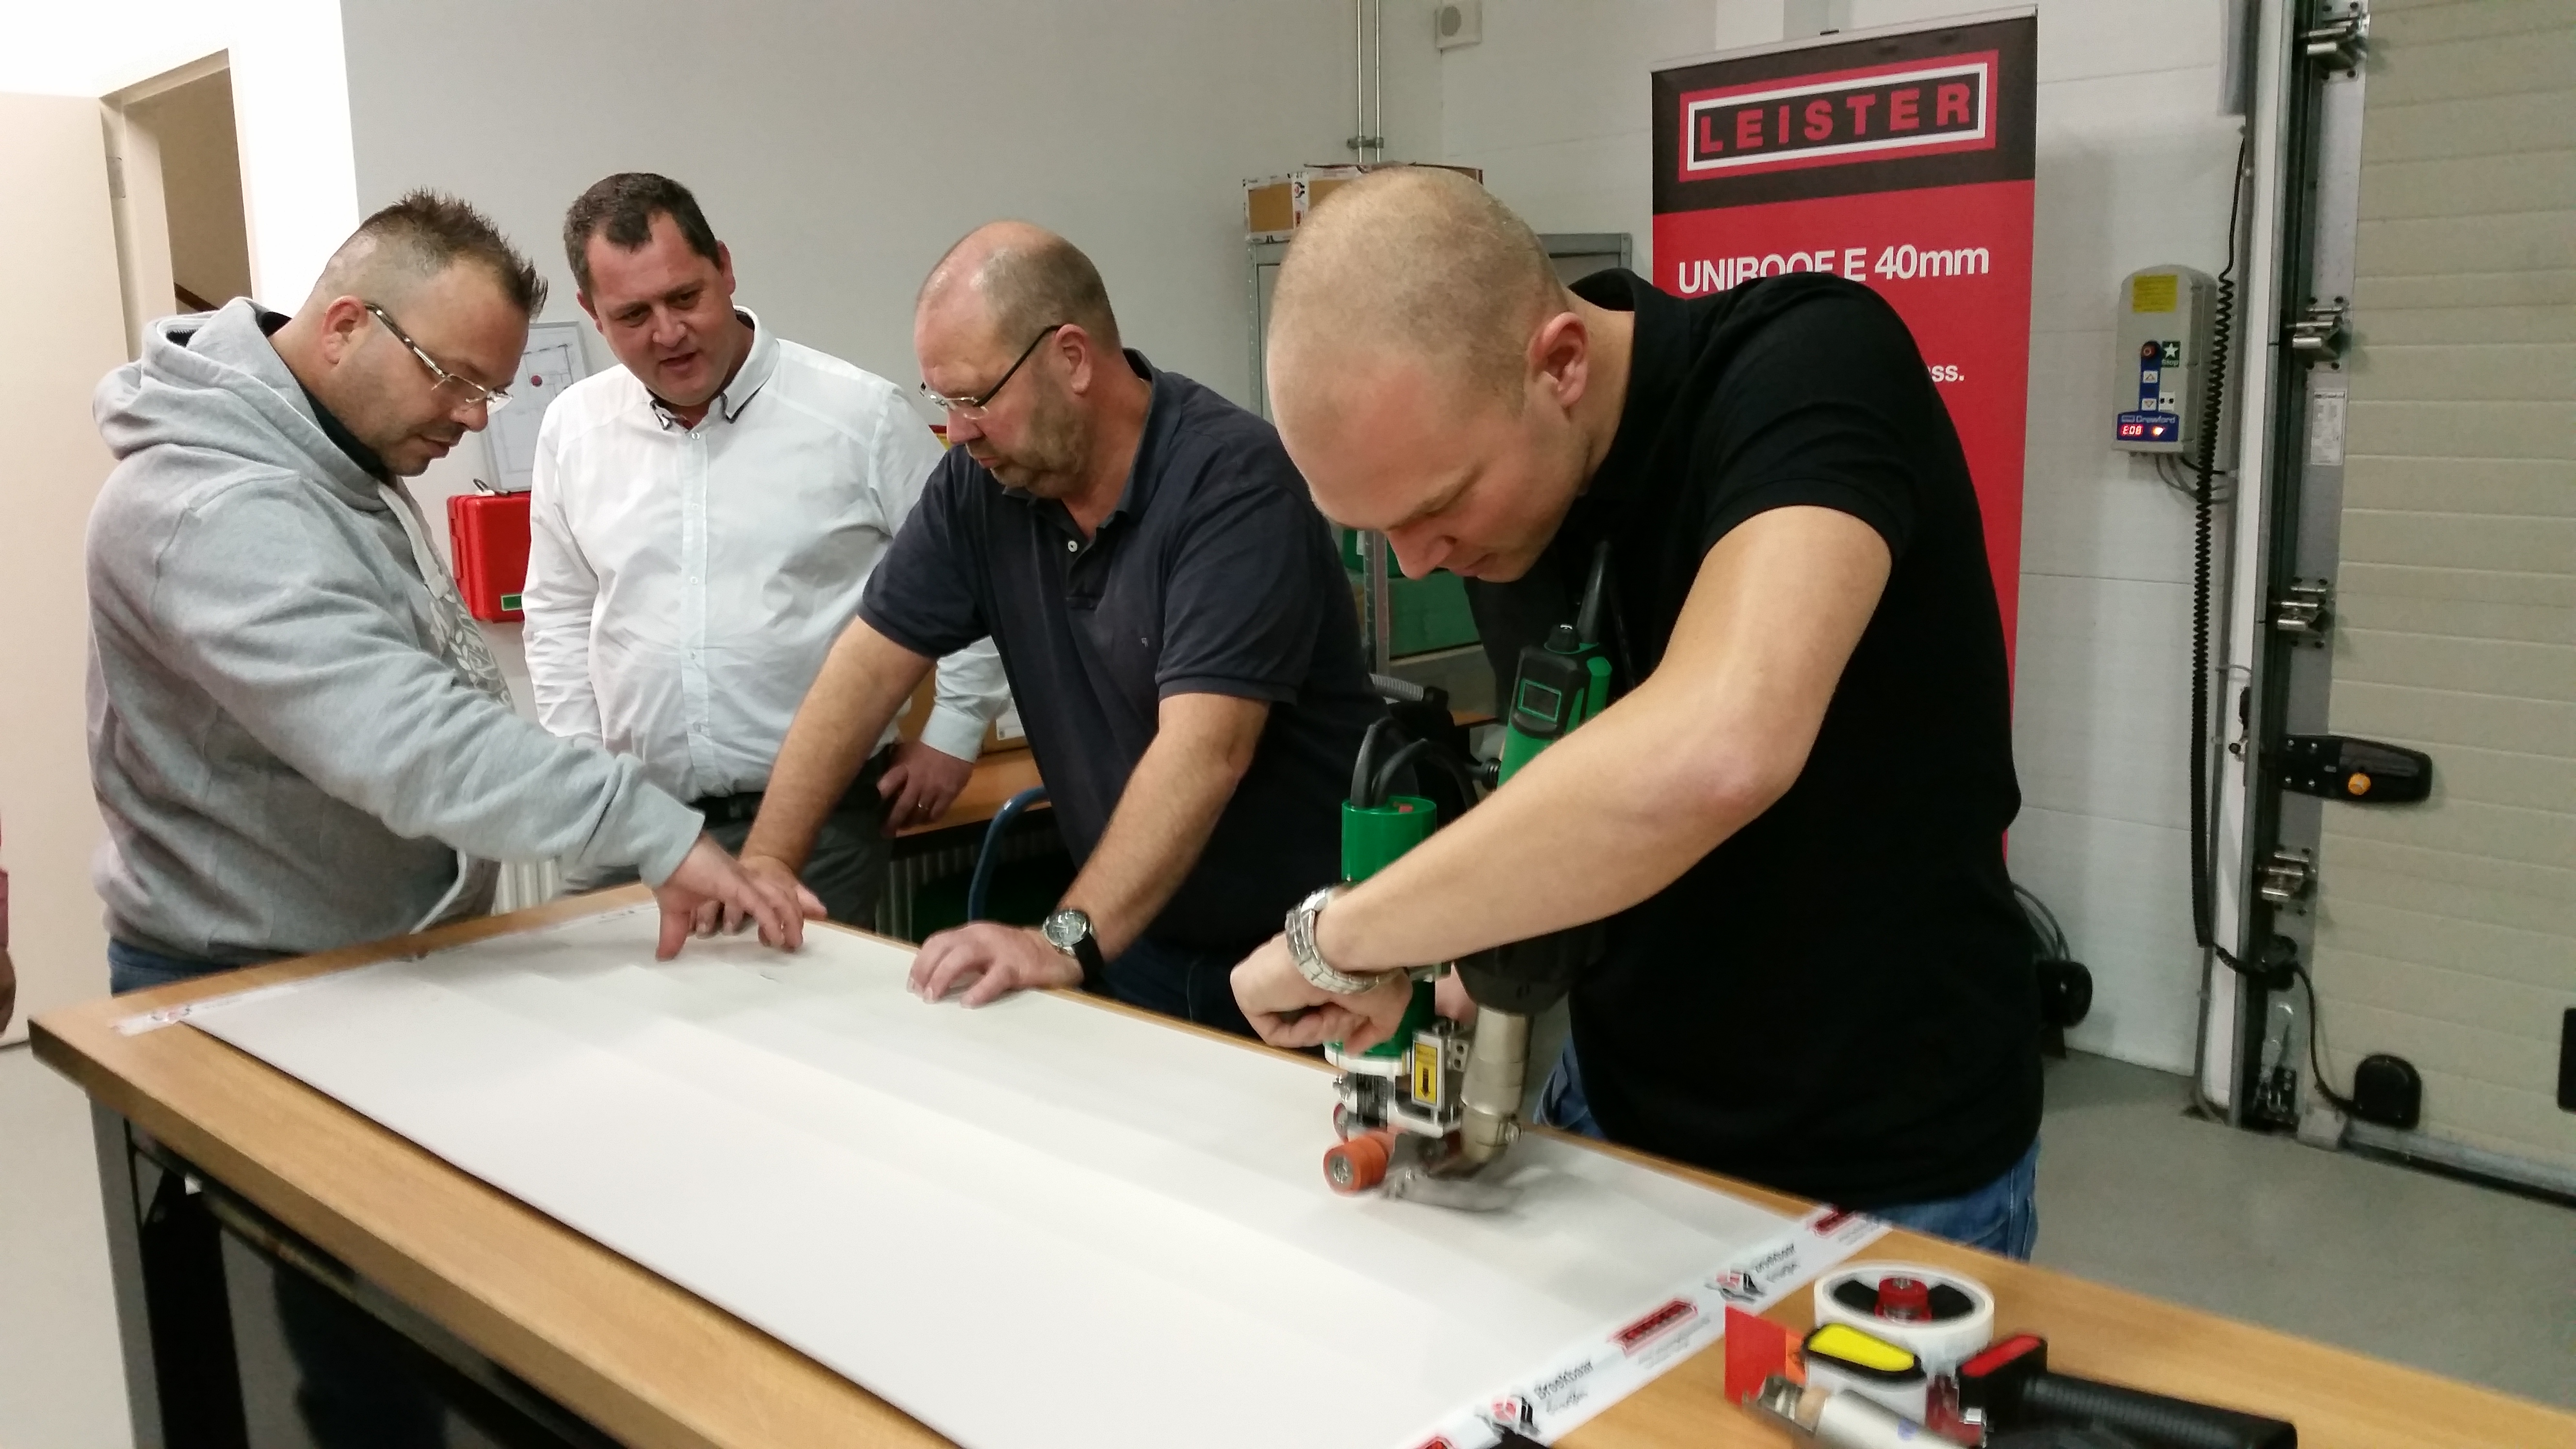 Training for roofing specialists - using the TRIAC DRIVE AT